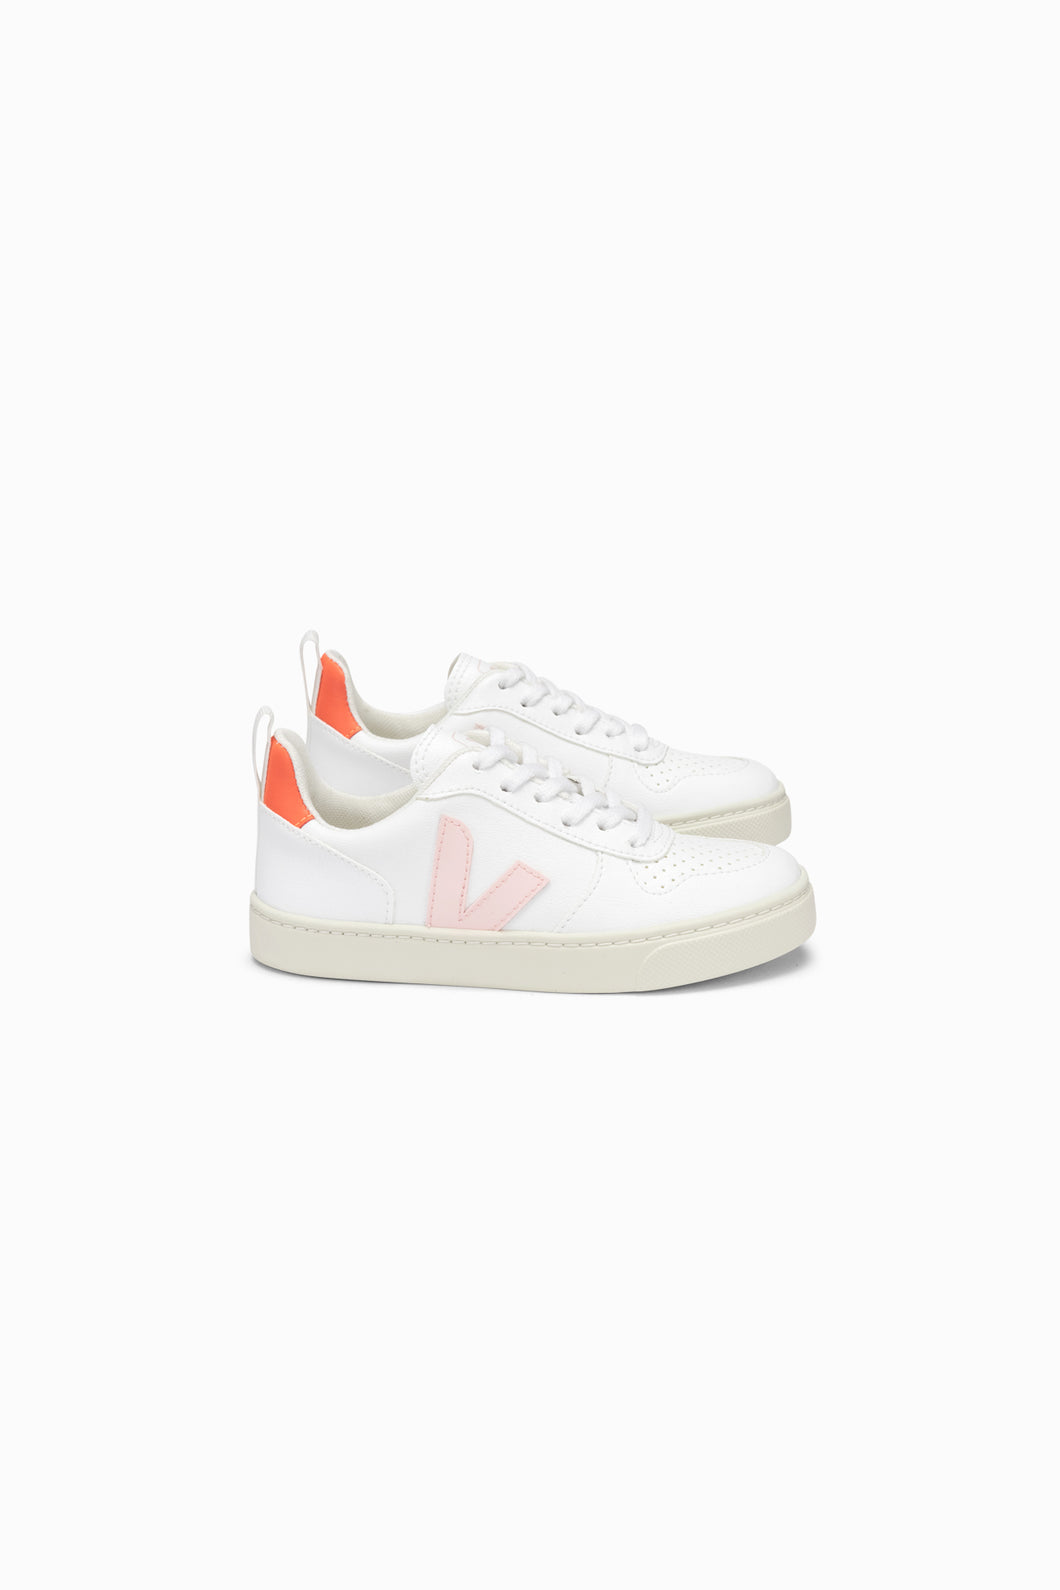 Veja V10 lace white petale orange fluo